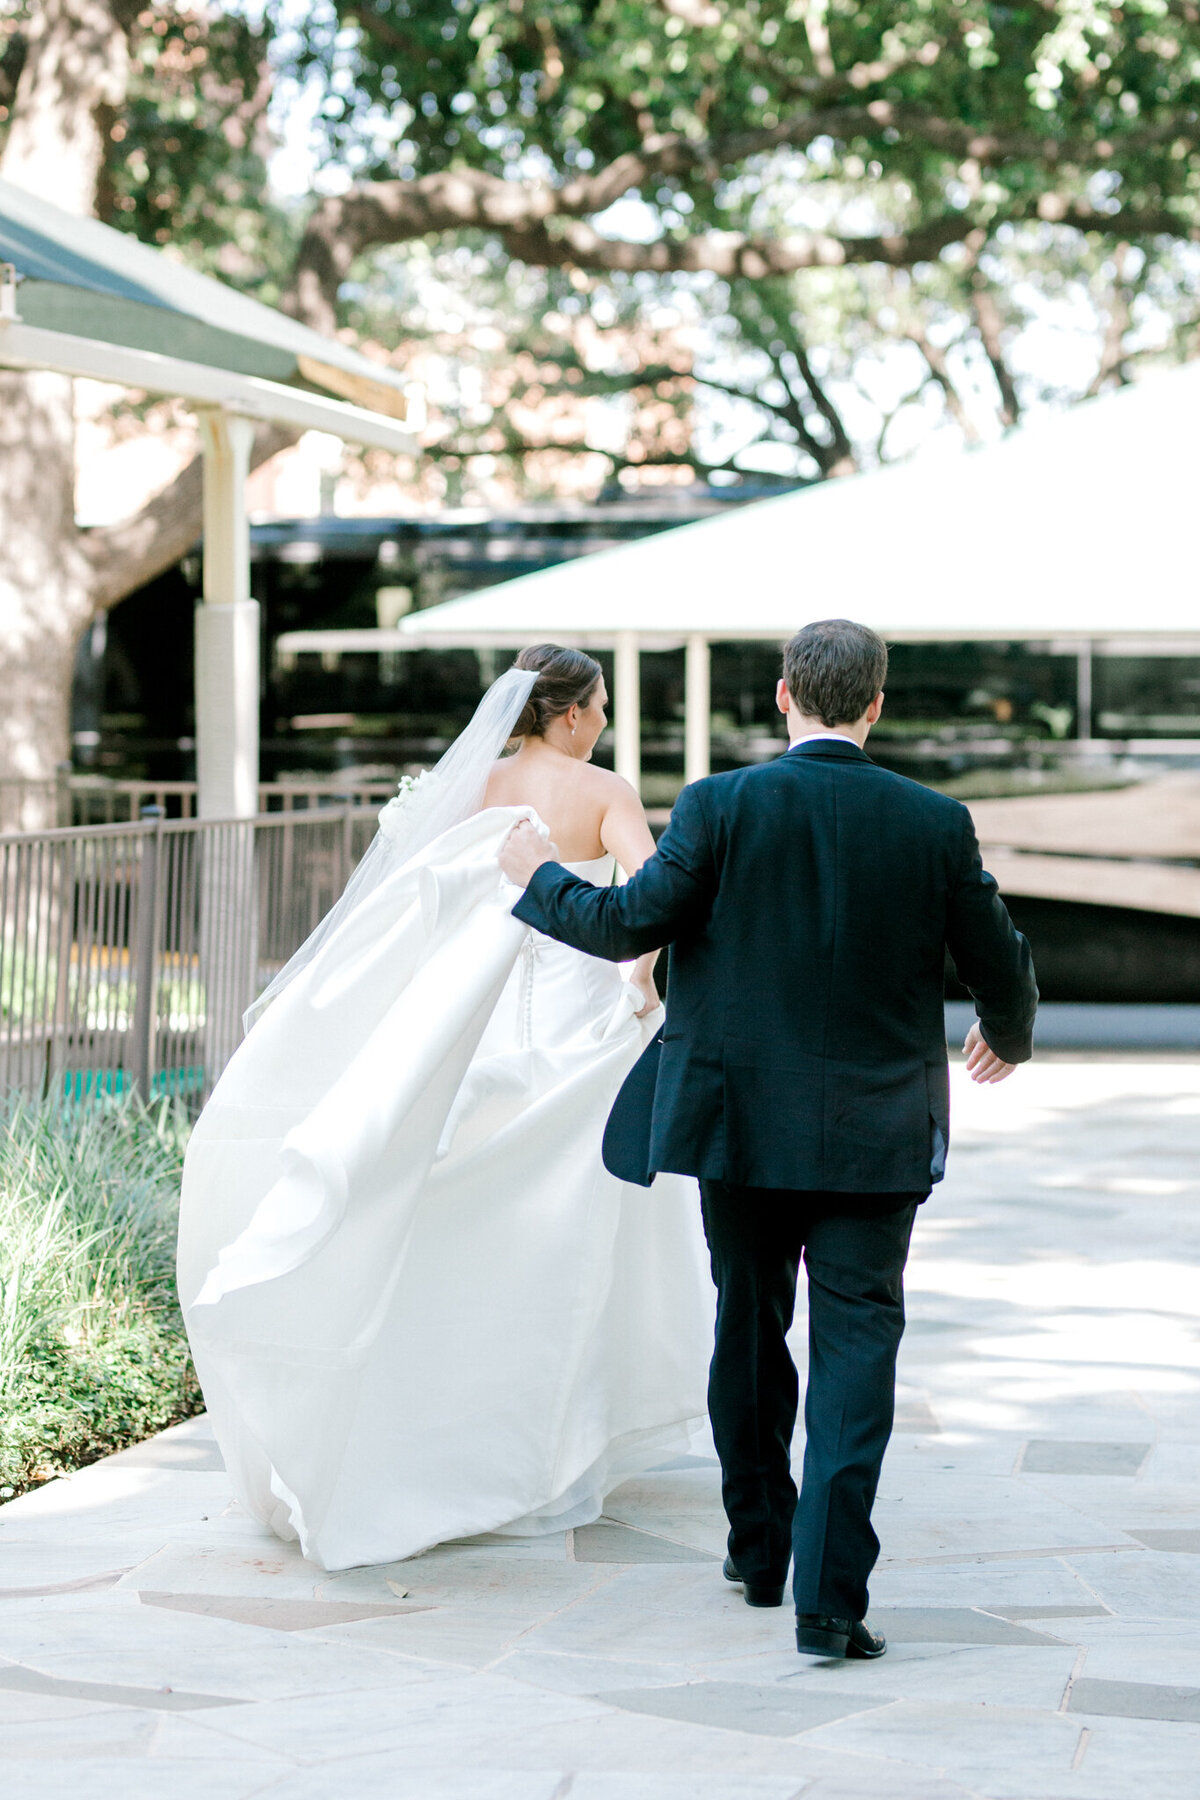 Wedding at the Crescent Court Hotel and Highland Park United Methodist Church in Dallas | Sami Kathryn Photography | DFW Wedding Photographer-138